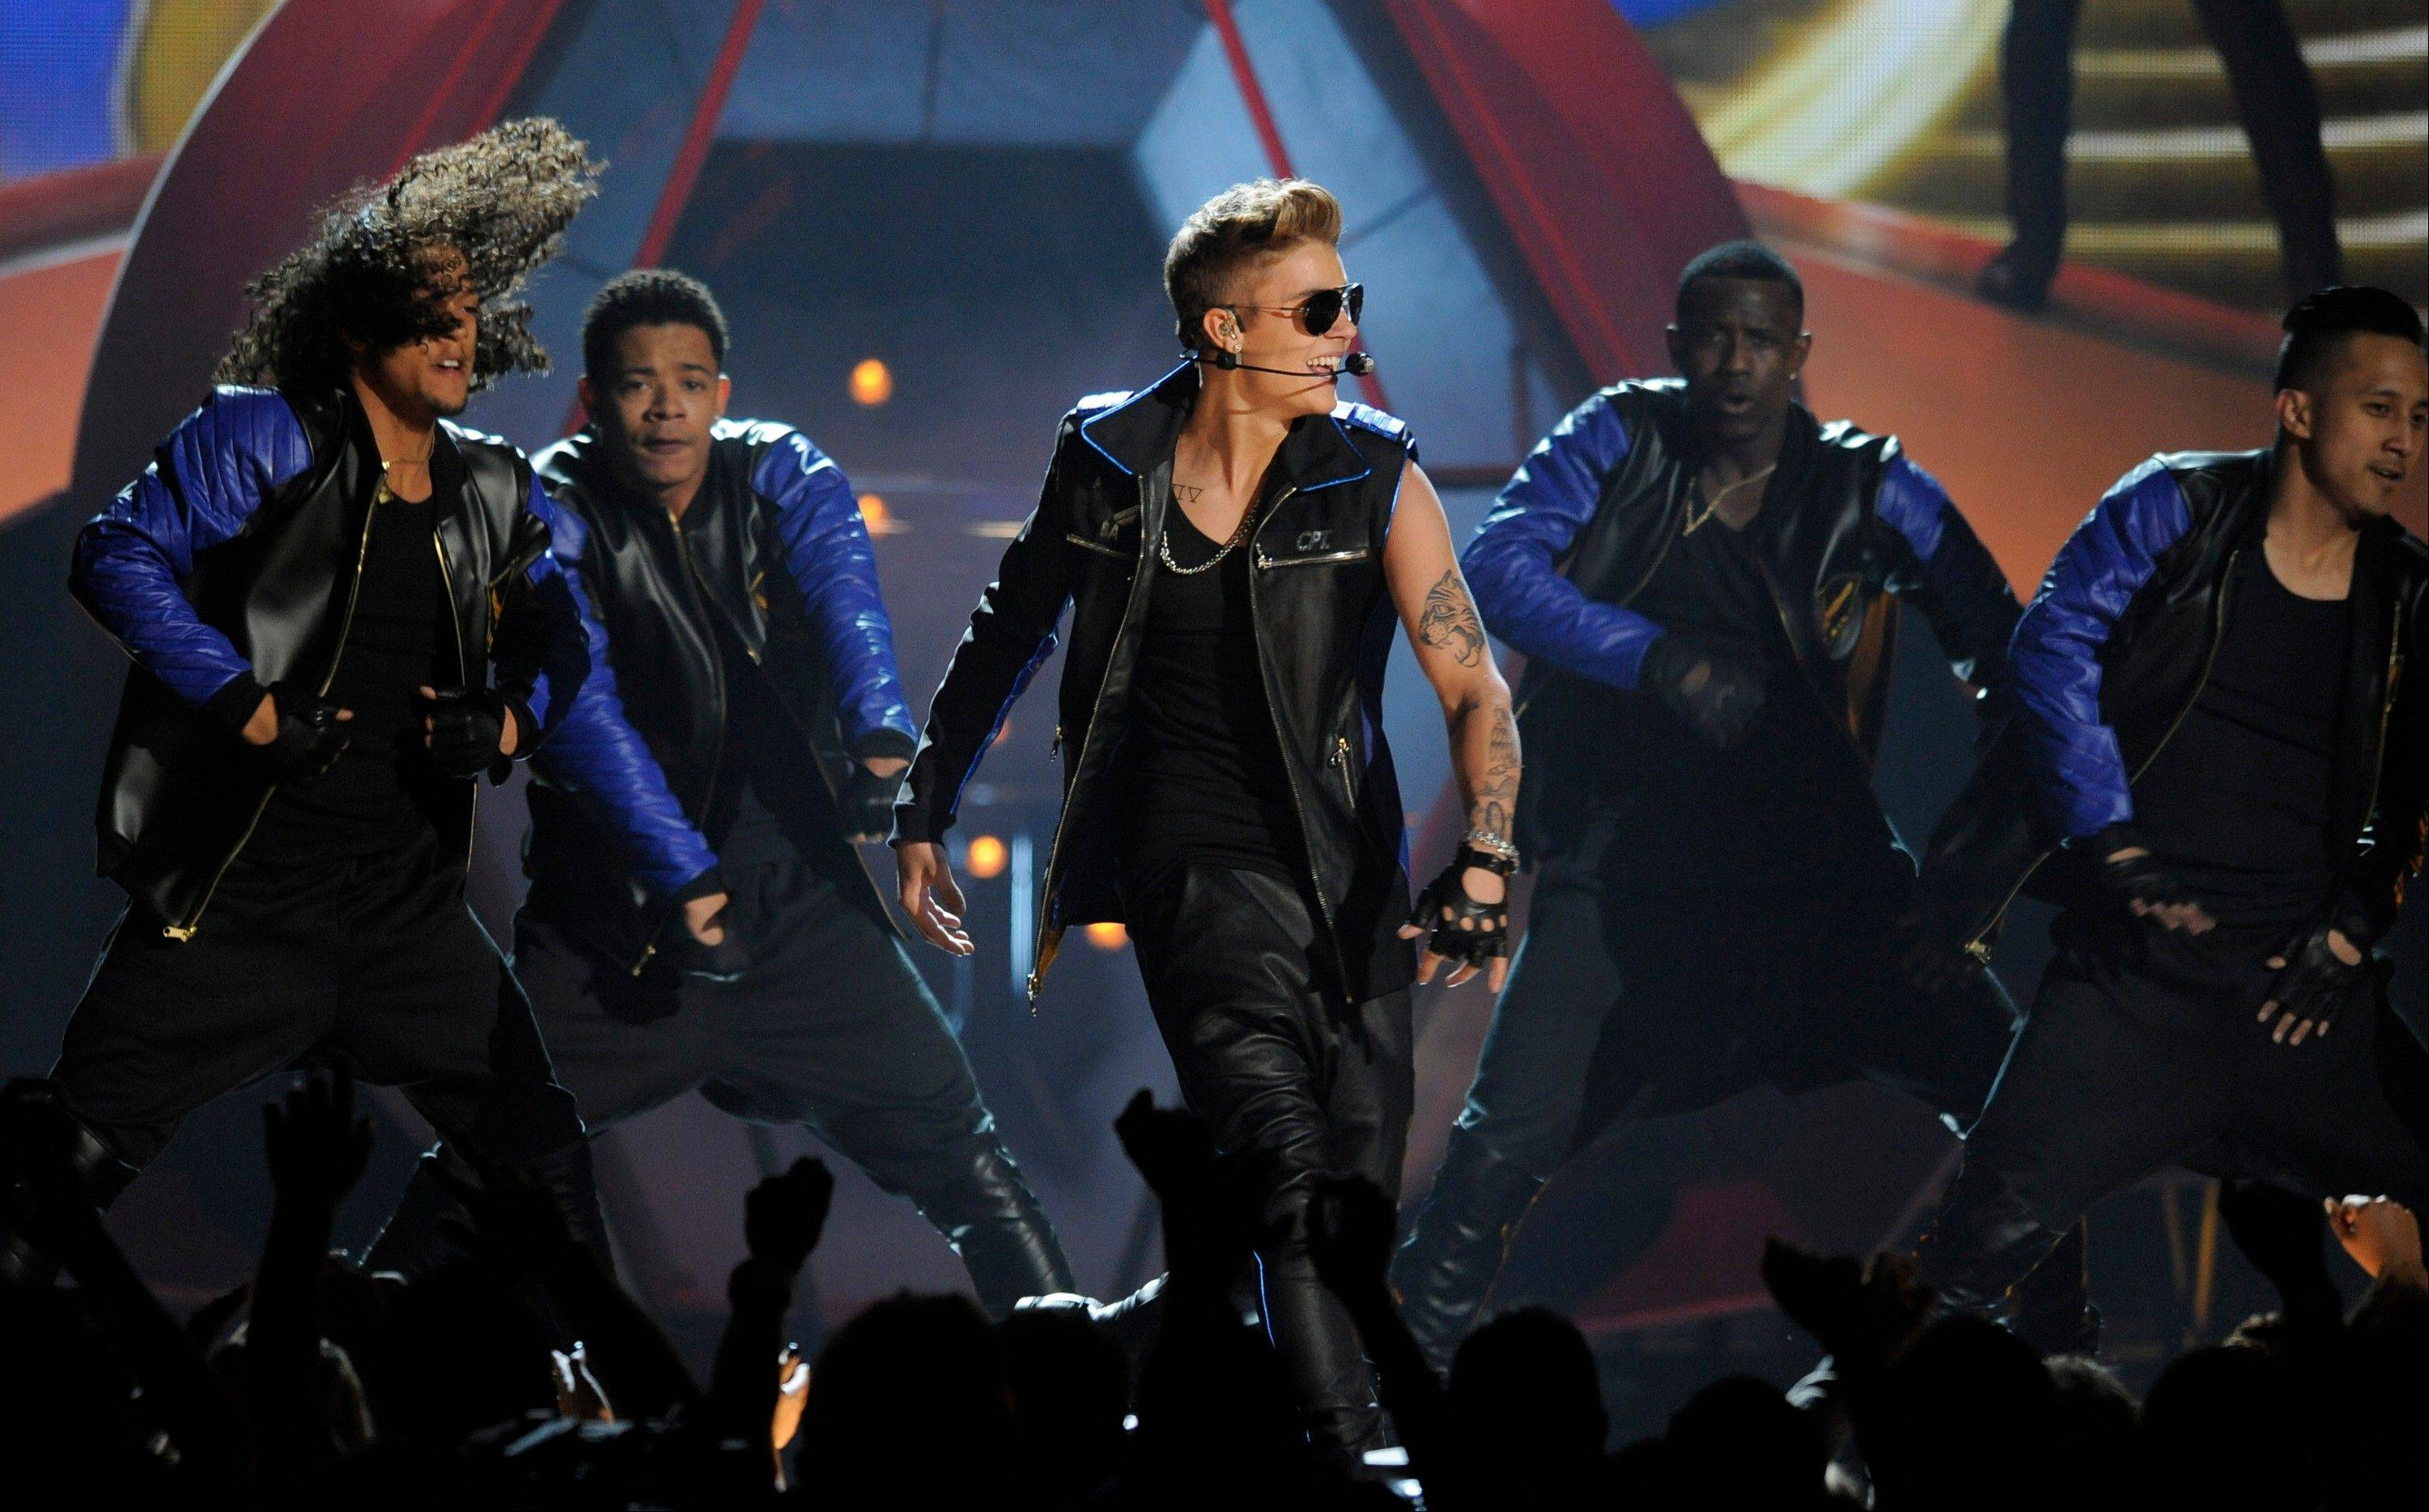 Justin Bieber, center, performs at the Billboard Music Awards at the MGM Grand Garden Arena on Sunday, May 19, 2013 in Las Vegas.